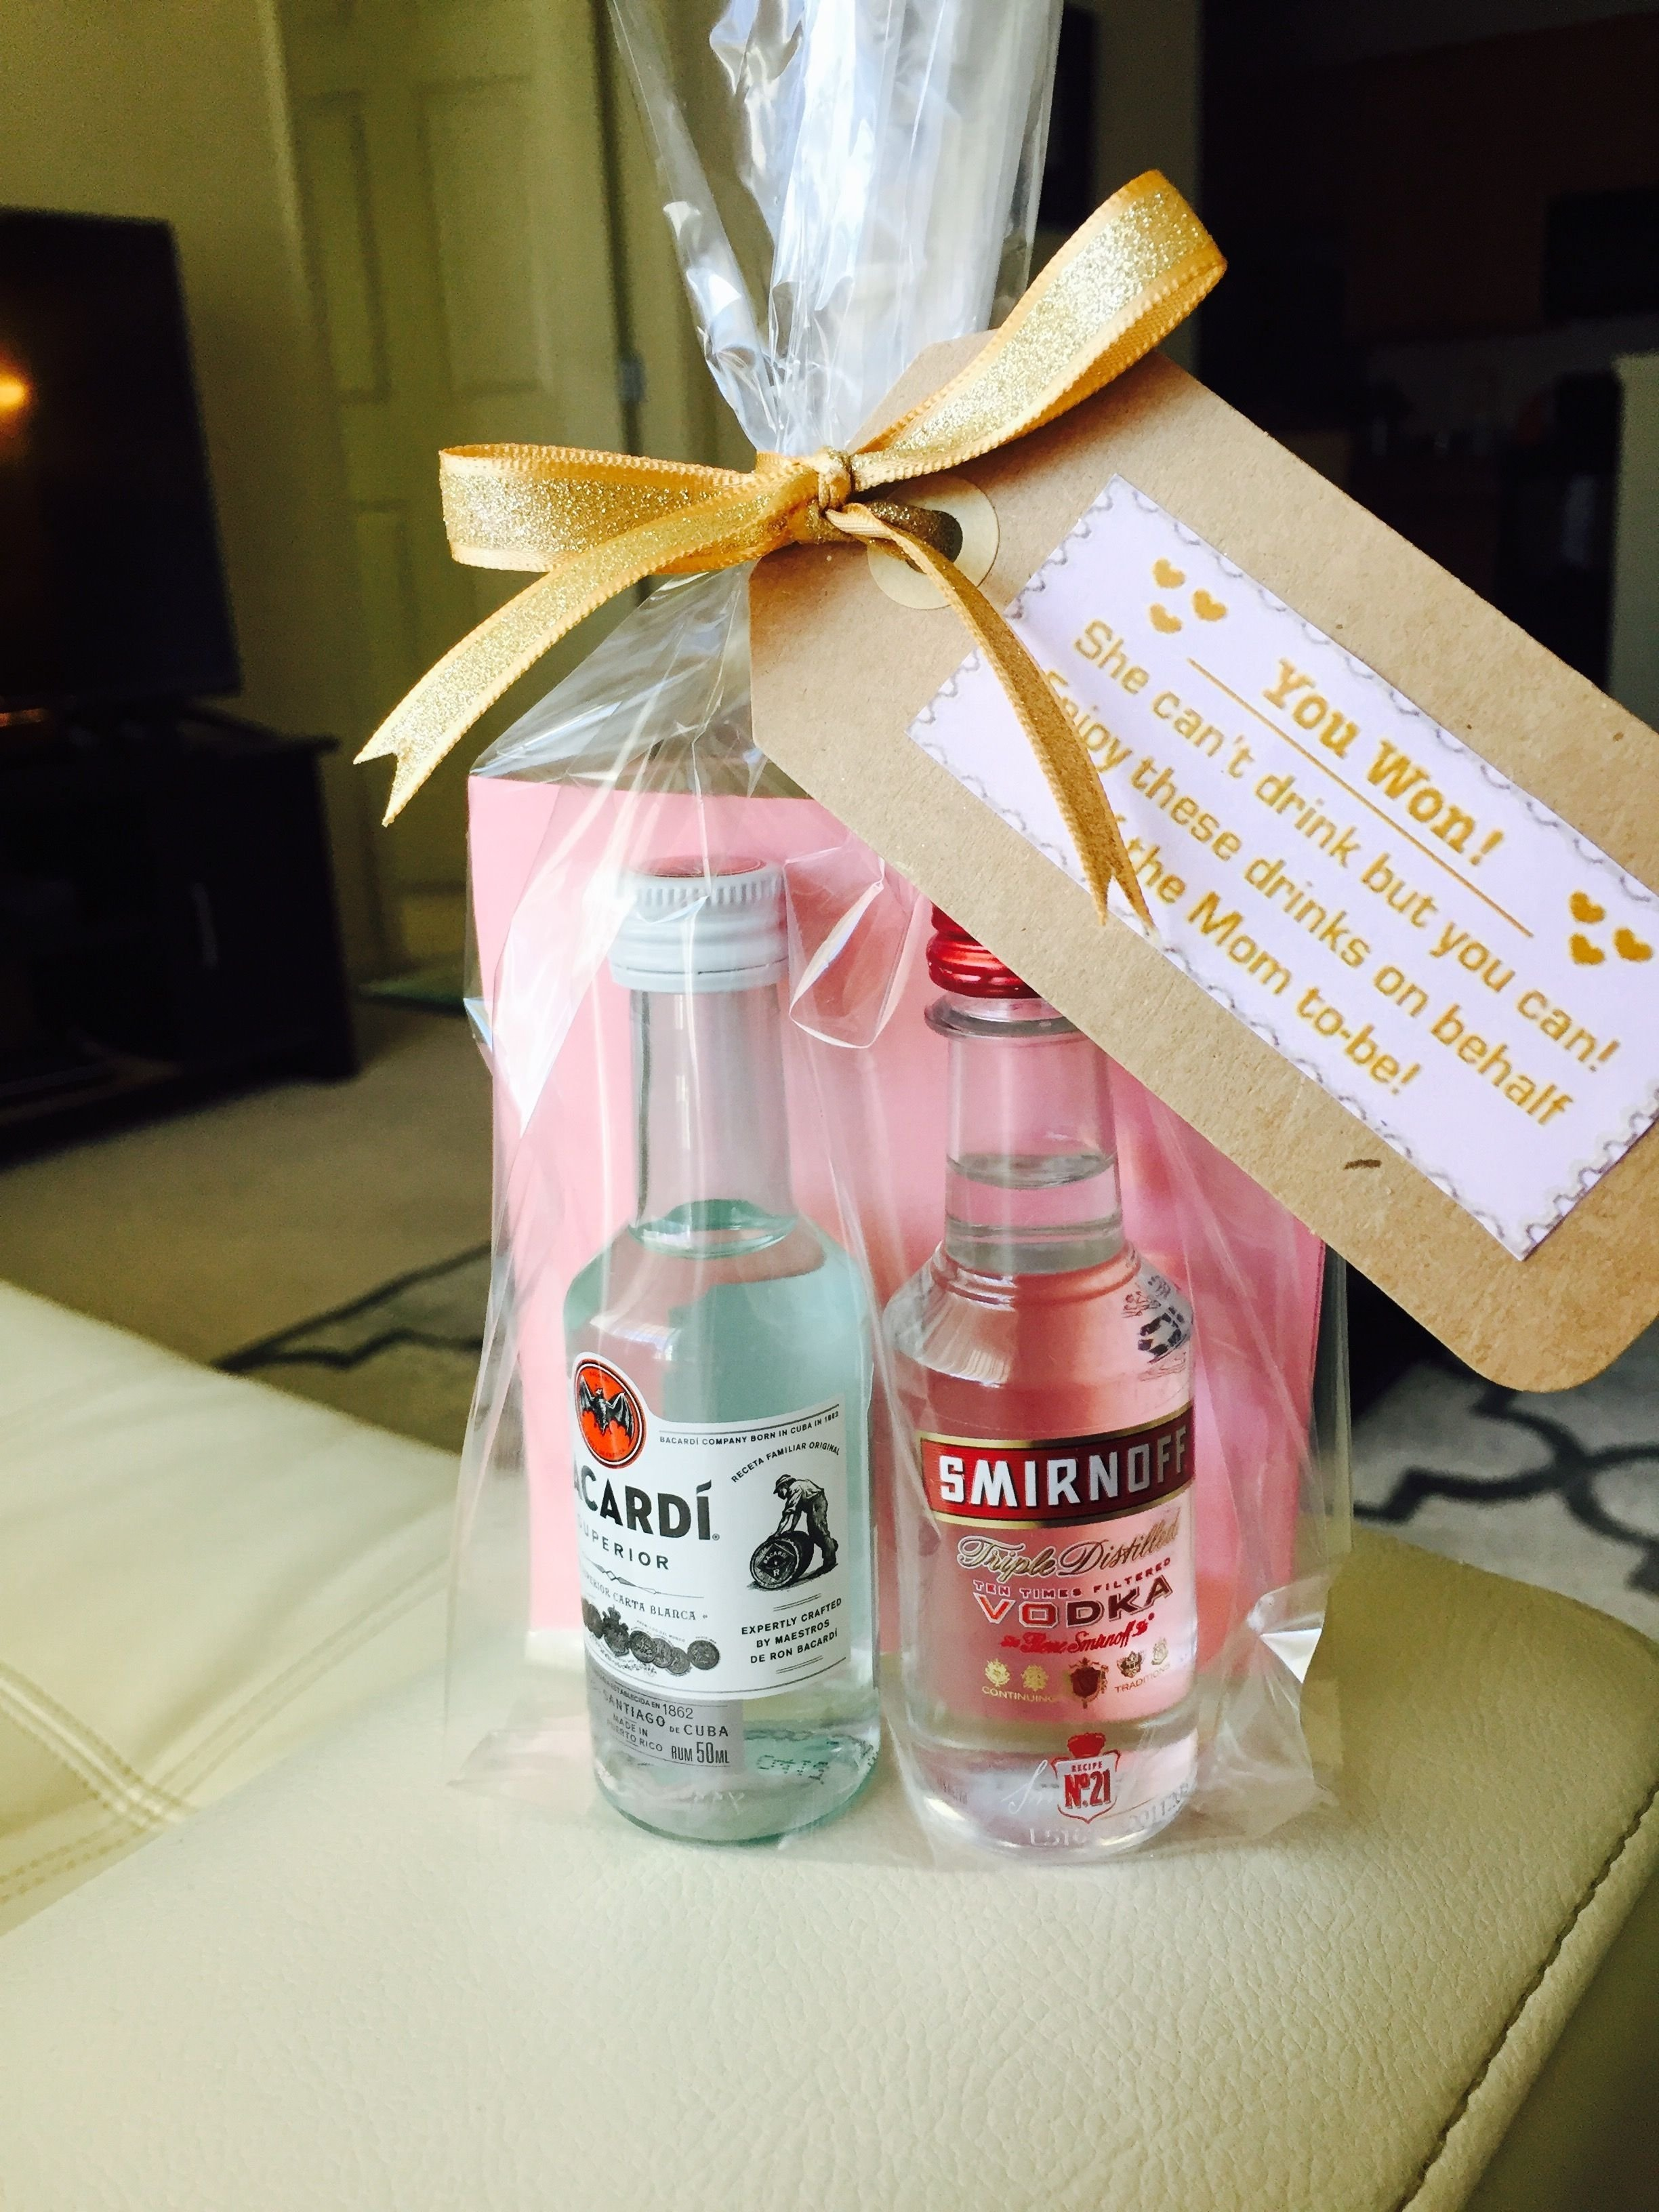 10 Awesome Goodie Bag Ideas For Adults diy baby shower game favors for men for a co ed shower cute gift 5 2021